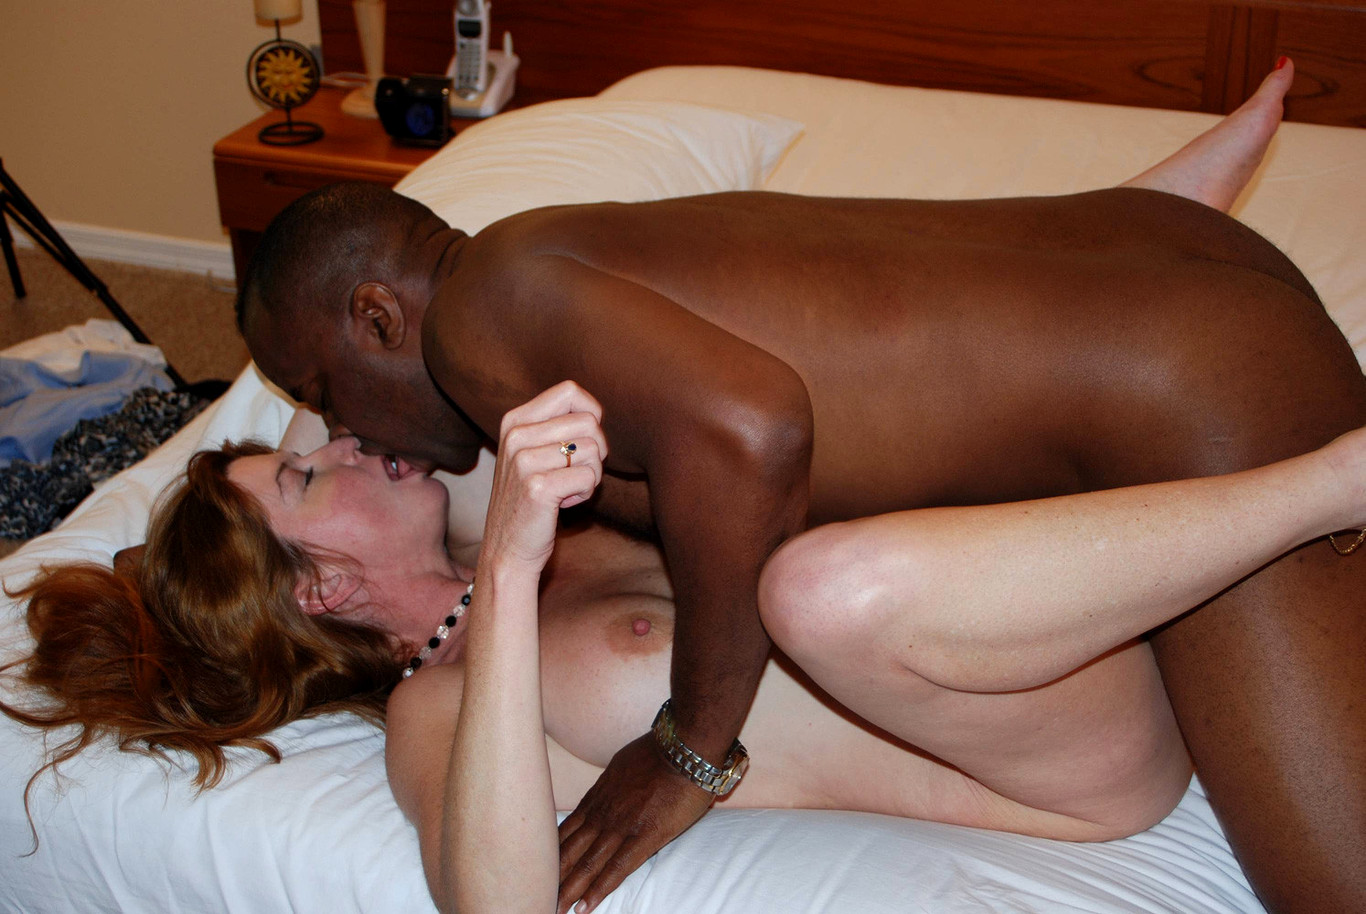 Black man with girl